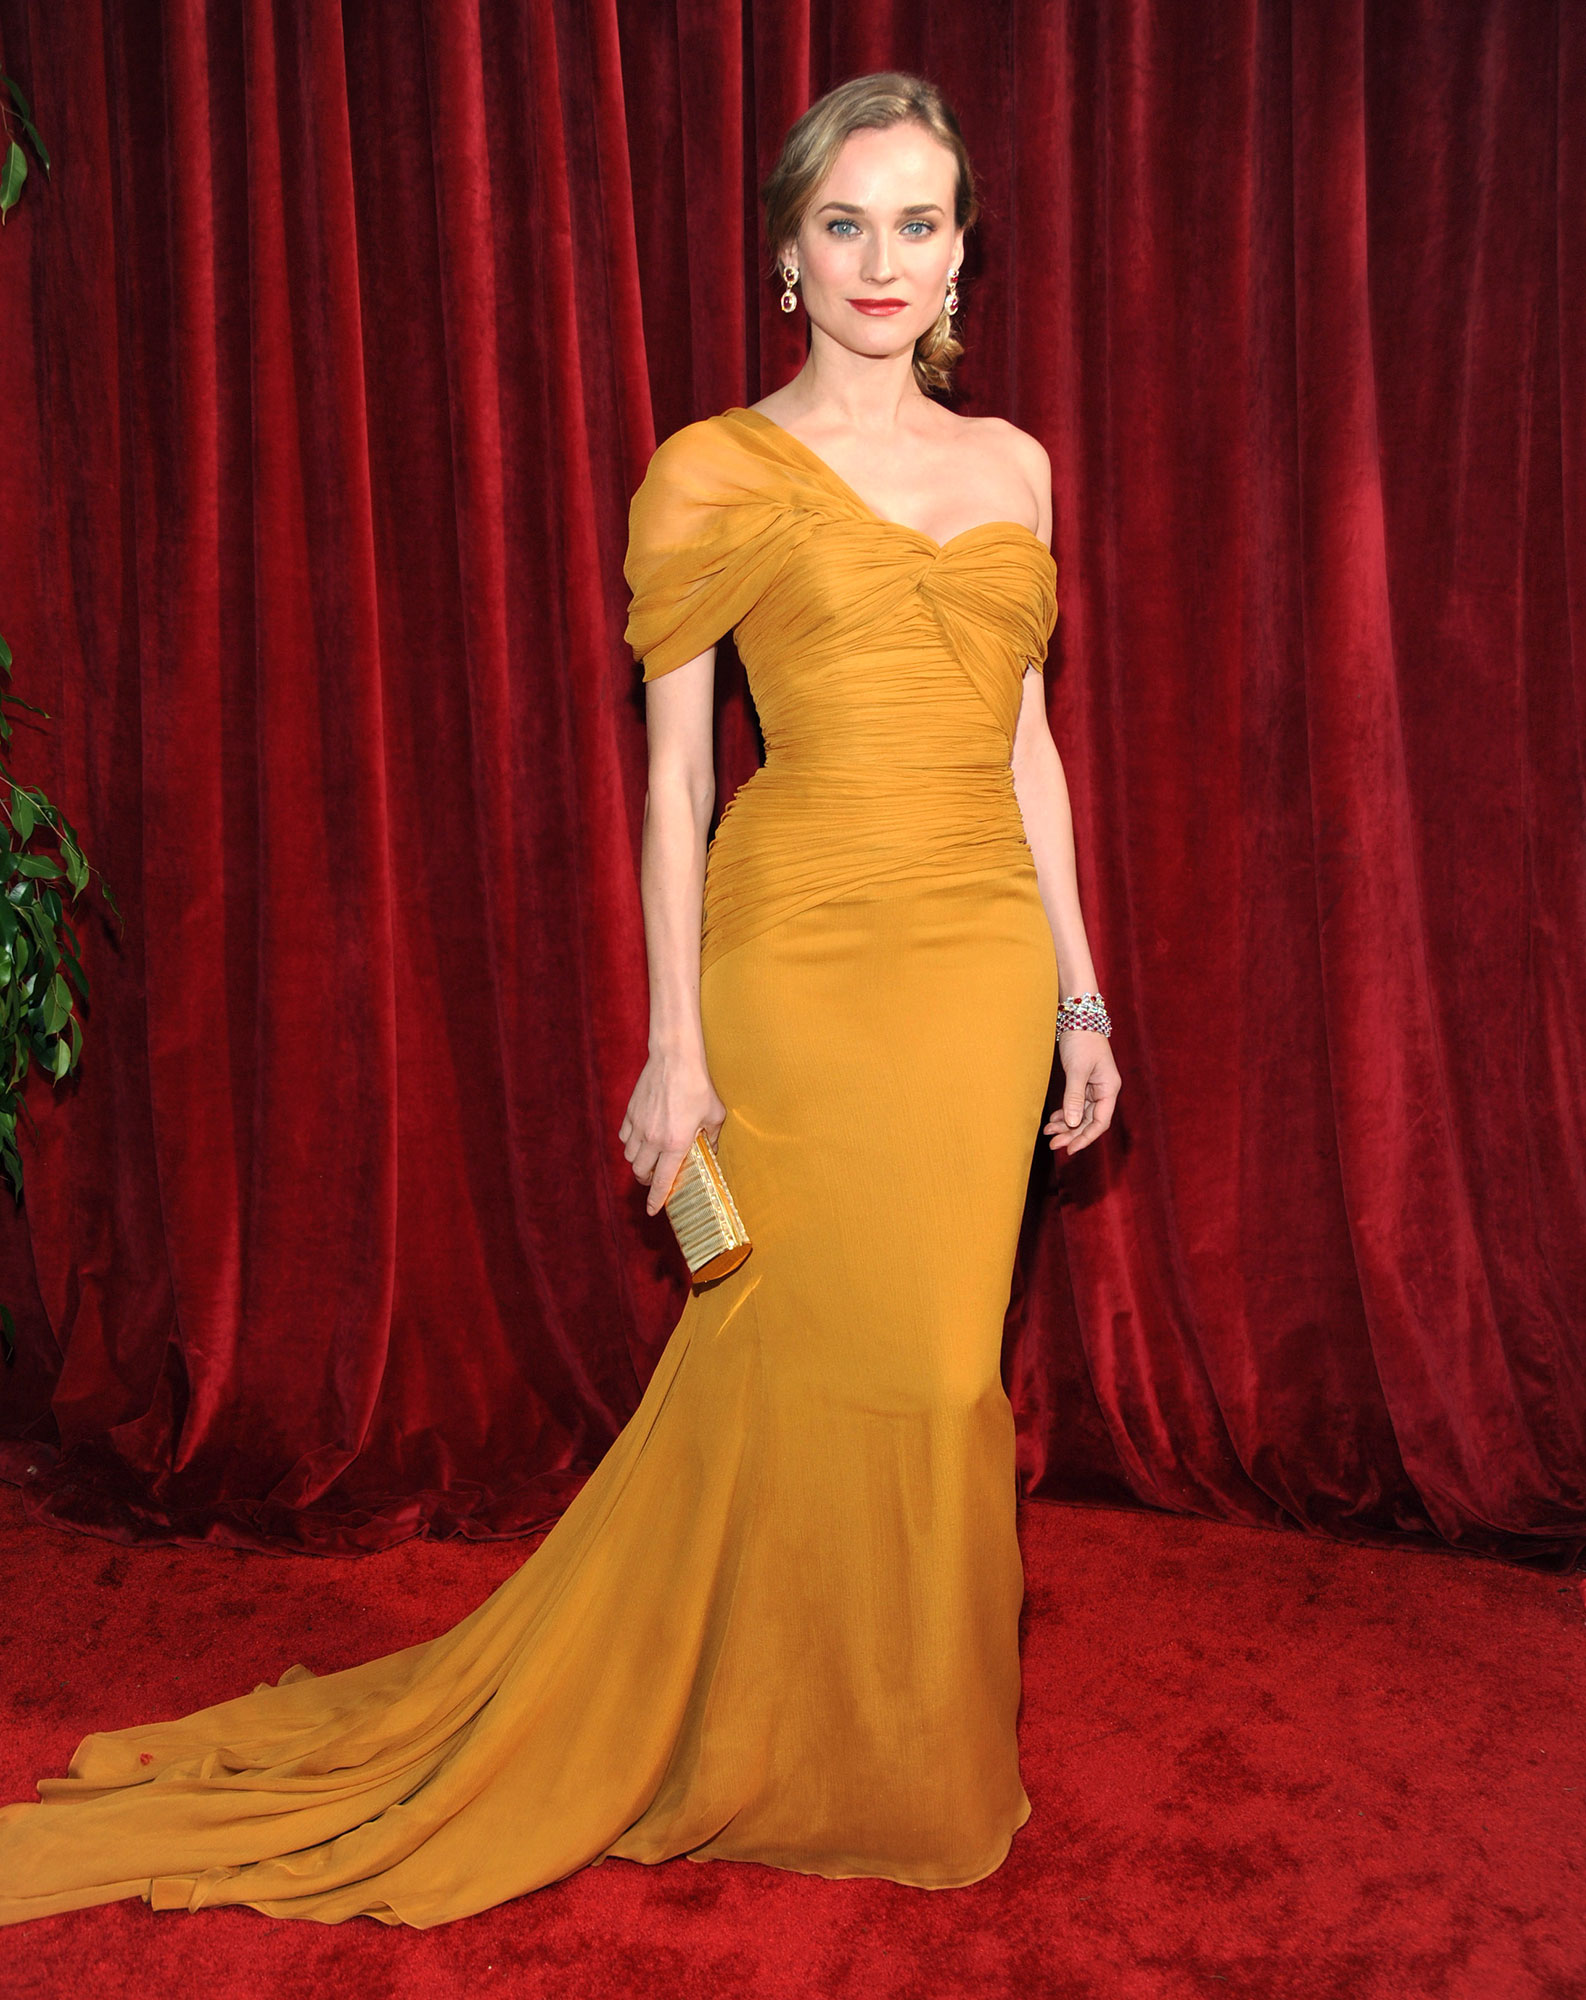 TNT/TBS Broadcasts The 16th Annual Screen Actors Guild Awards - Red Carpet